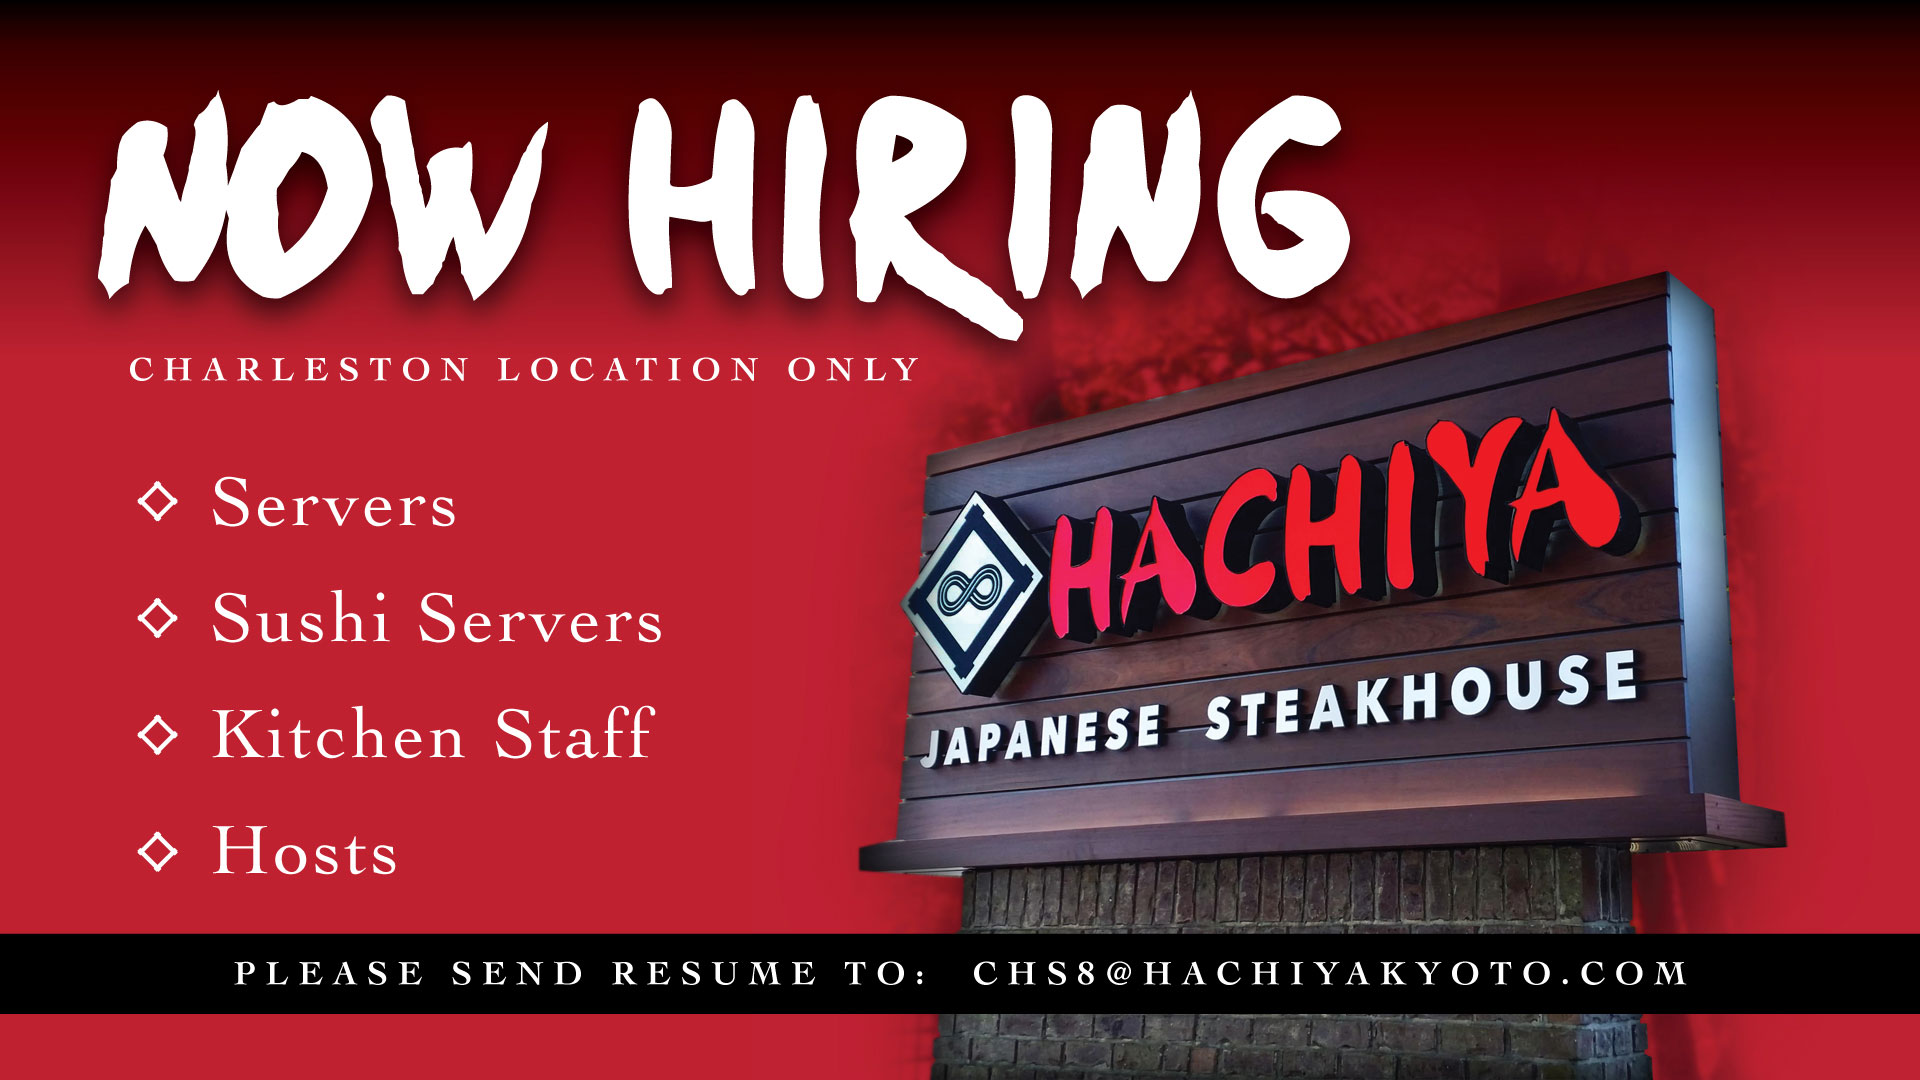 now_hiring_ad_charleston